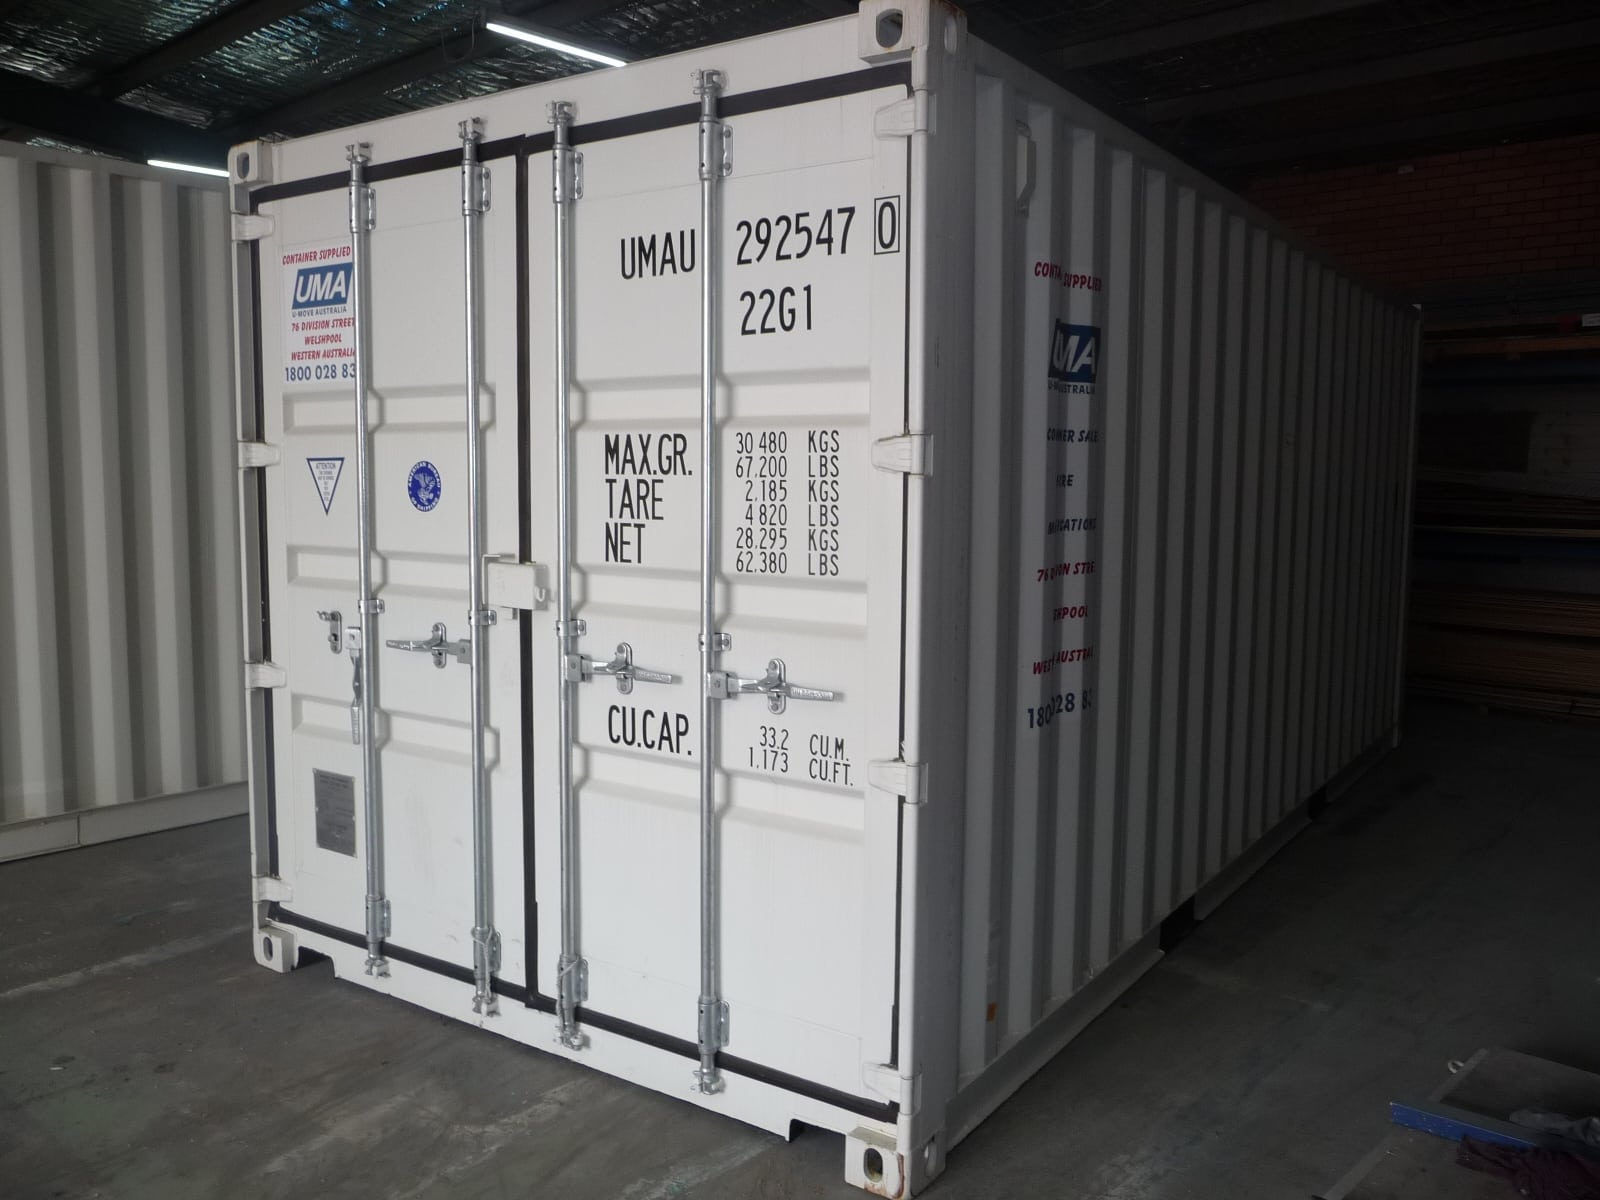 Shipping Containers For Sale Perth   New & Second Hand   U-Move